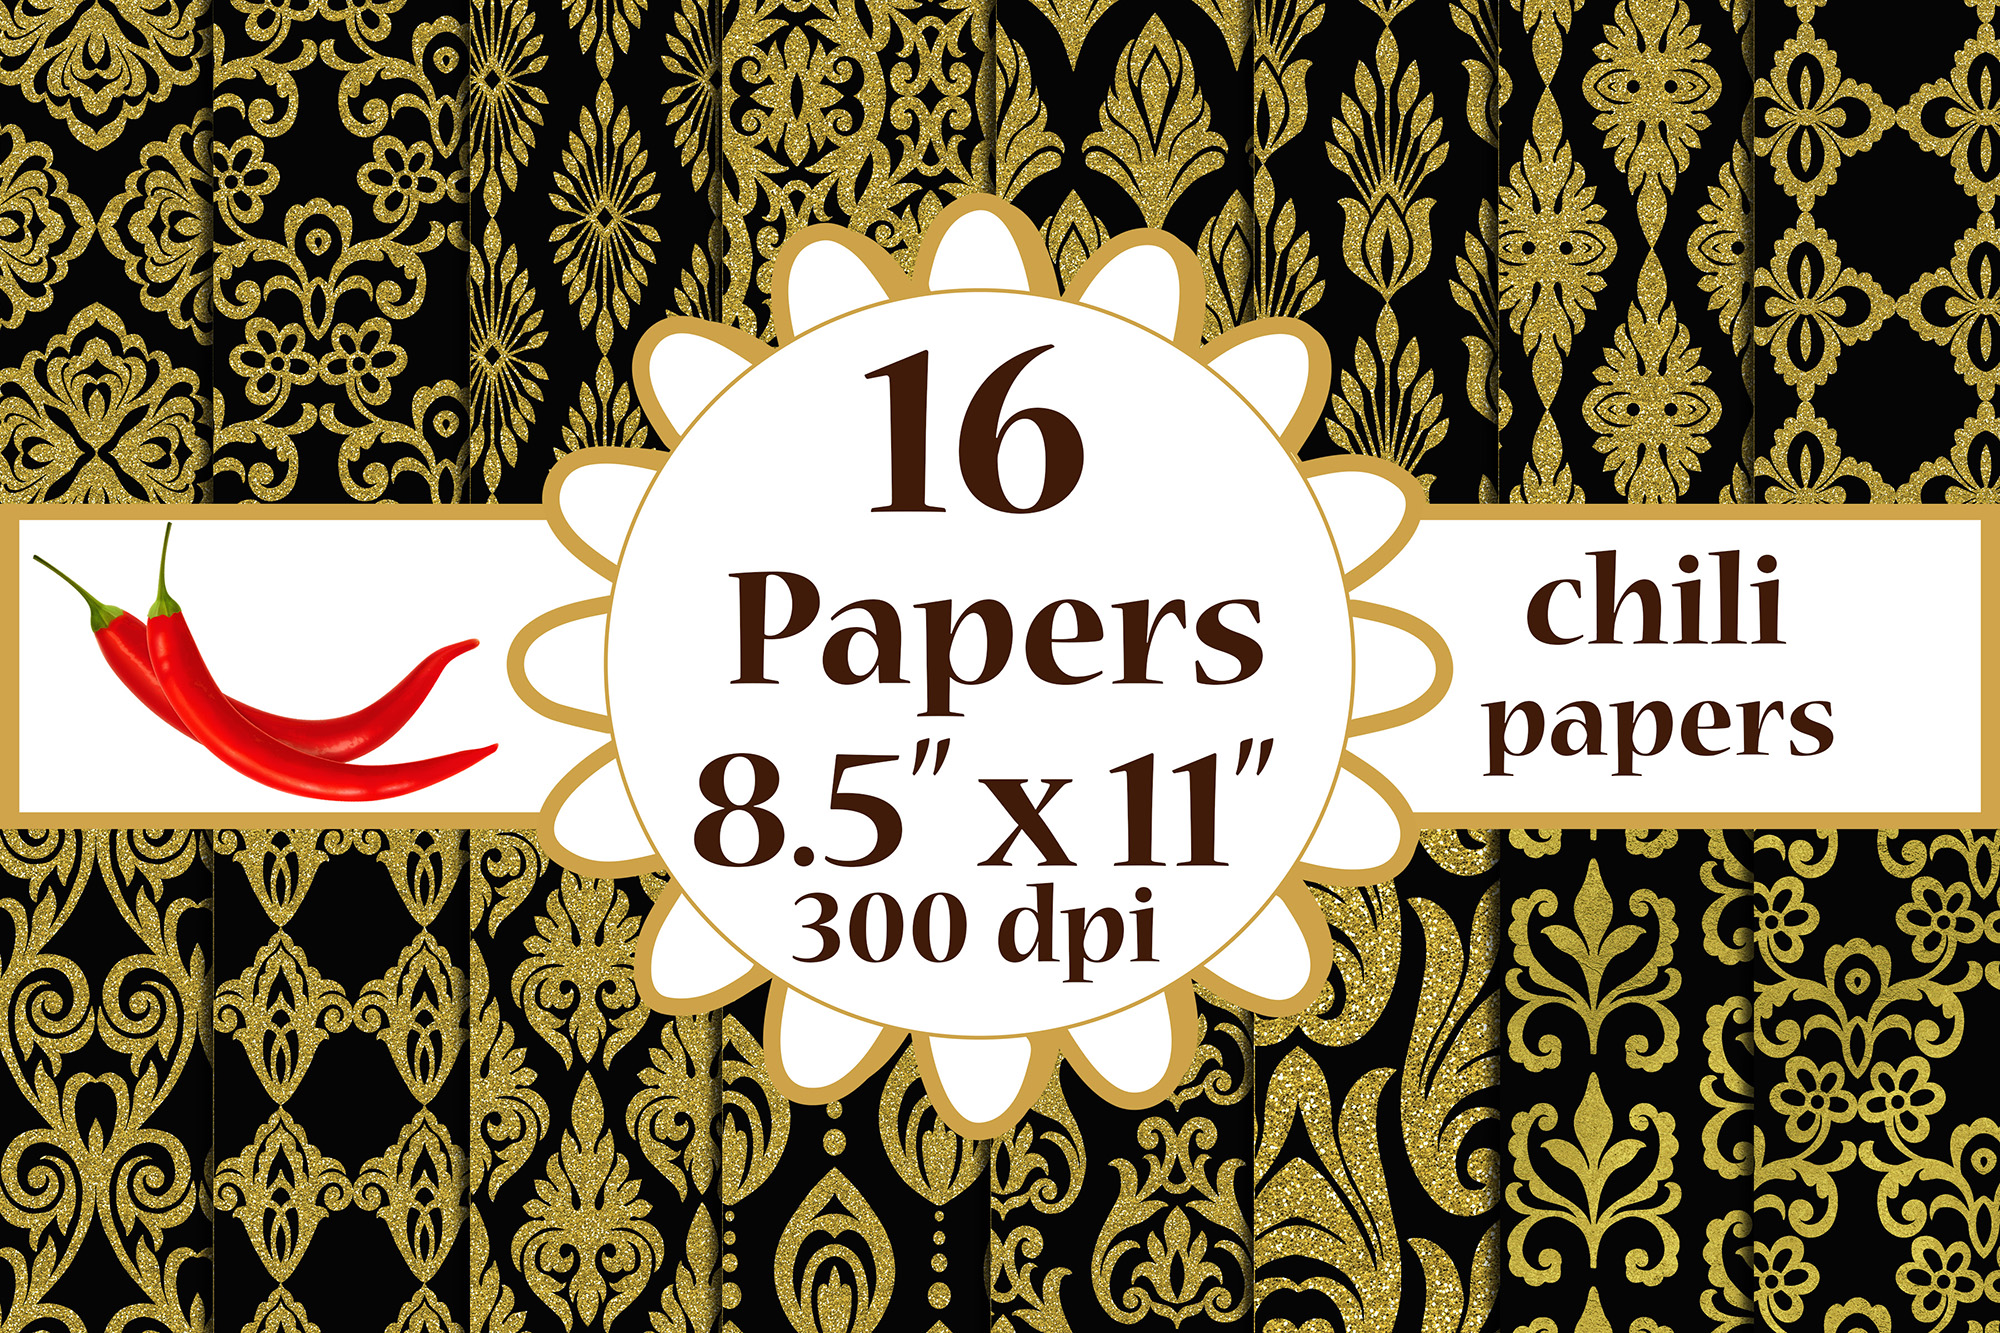 Download Free Black And Gold Paper Black Gold Digital Graphic By Chilipapers for Cricut Explore, Silhouette and other cutting machines.